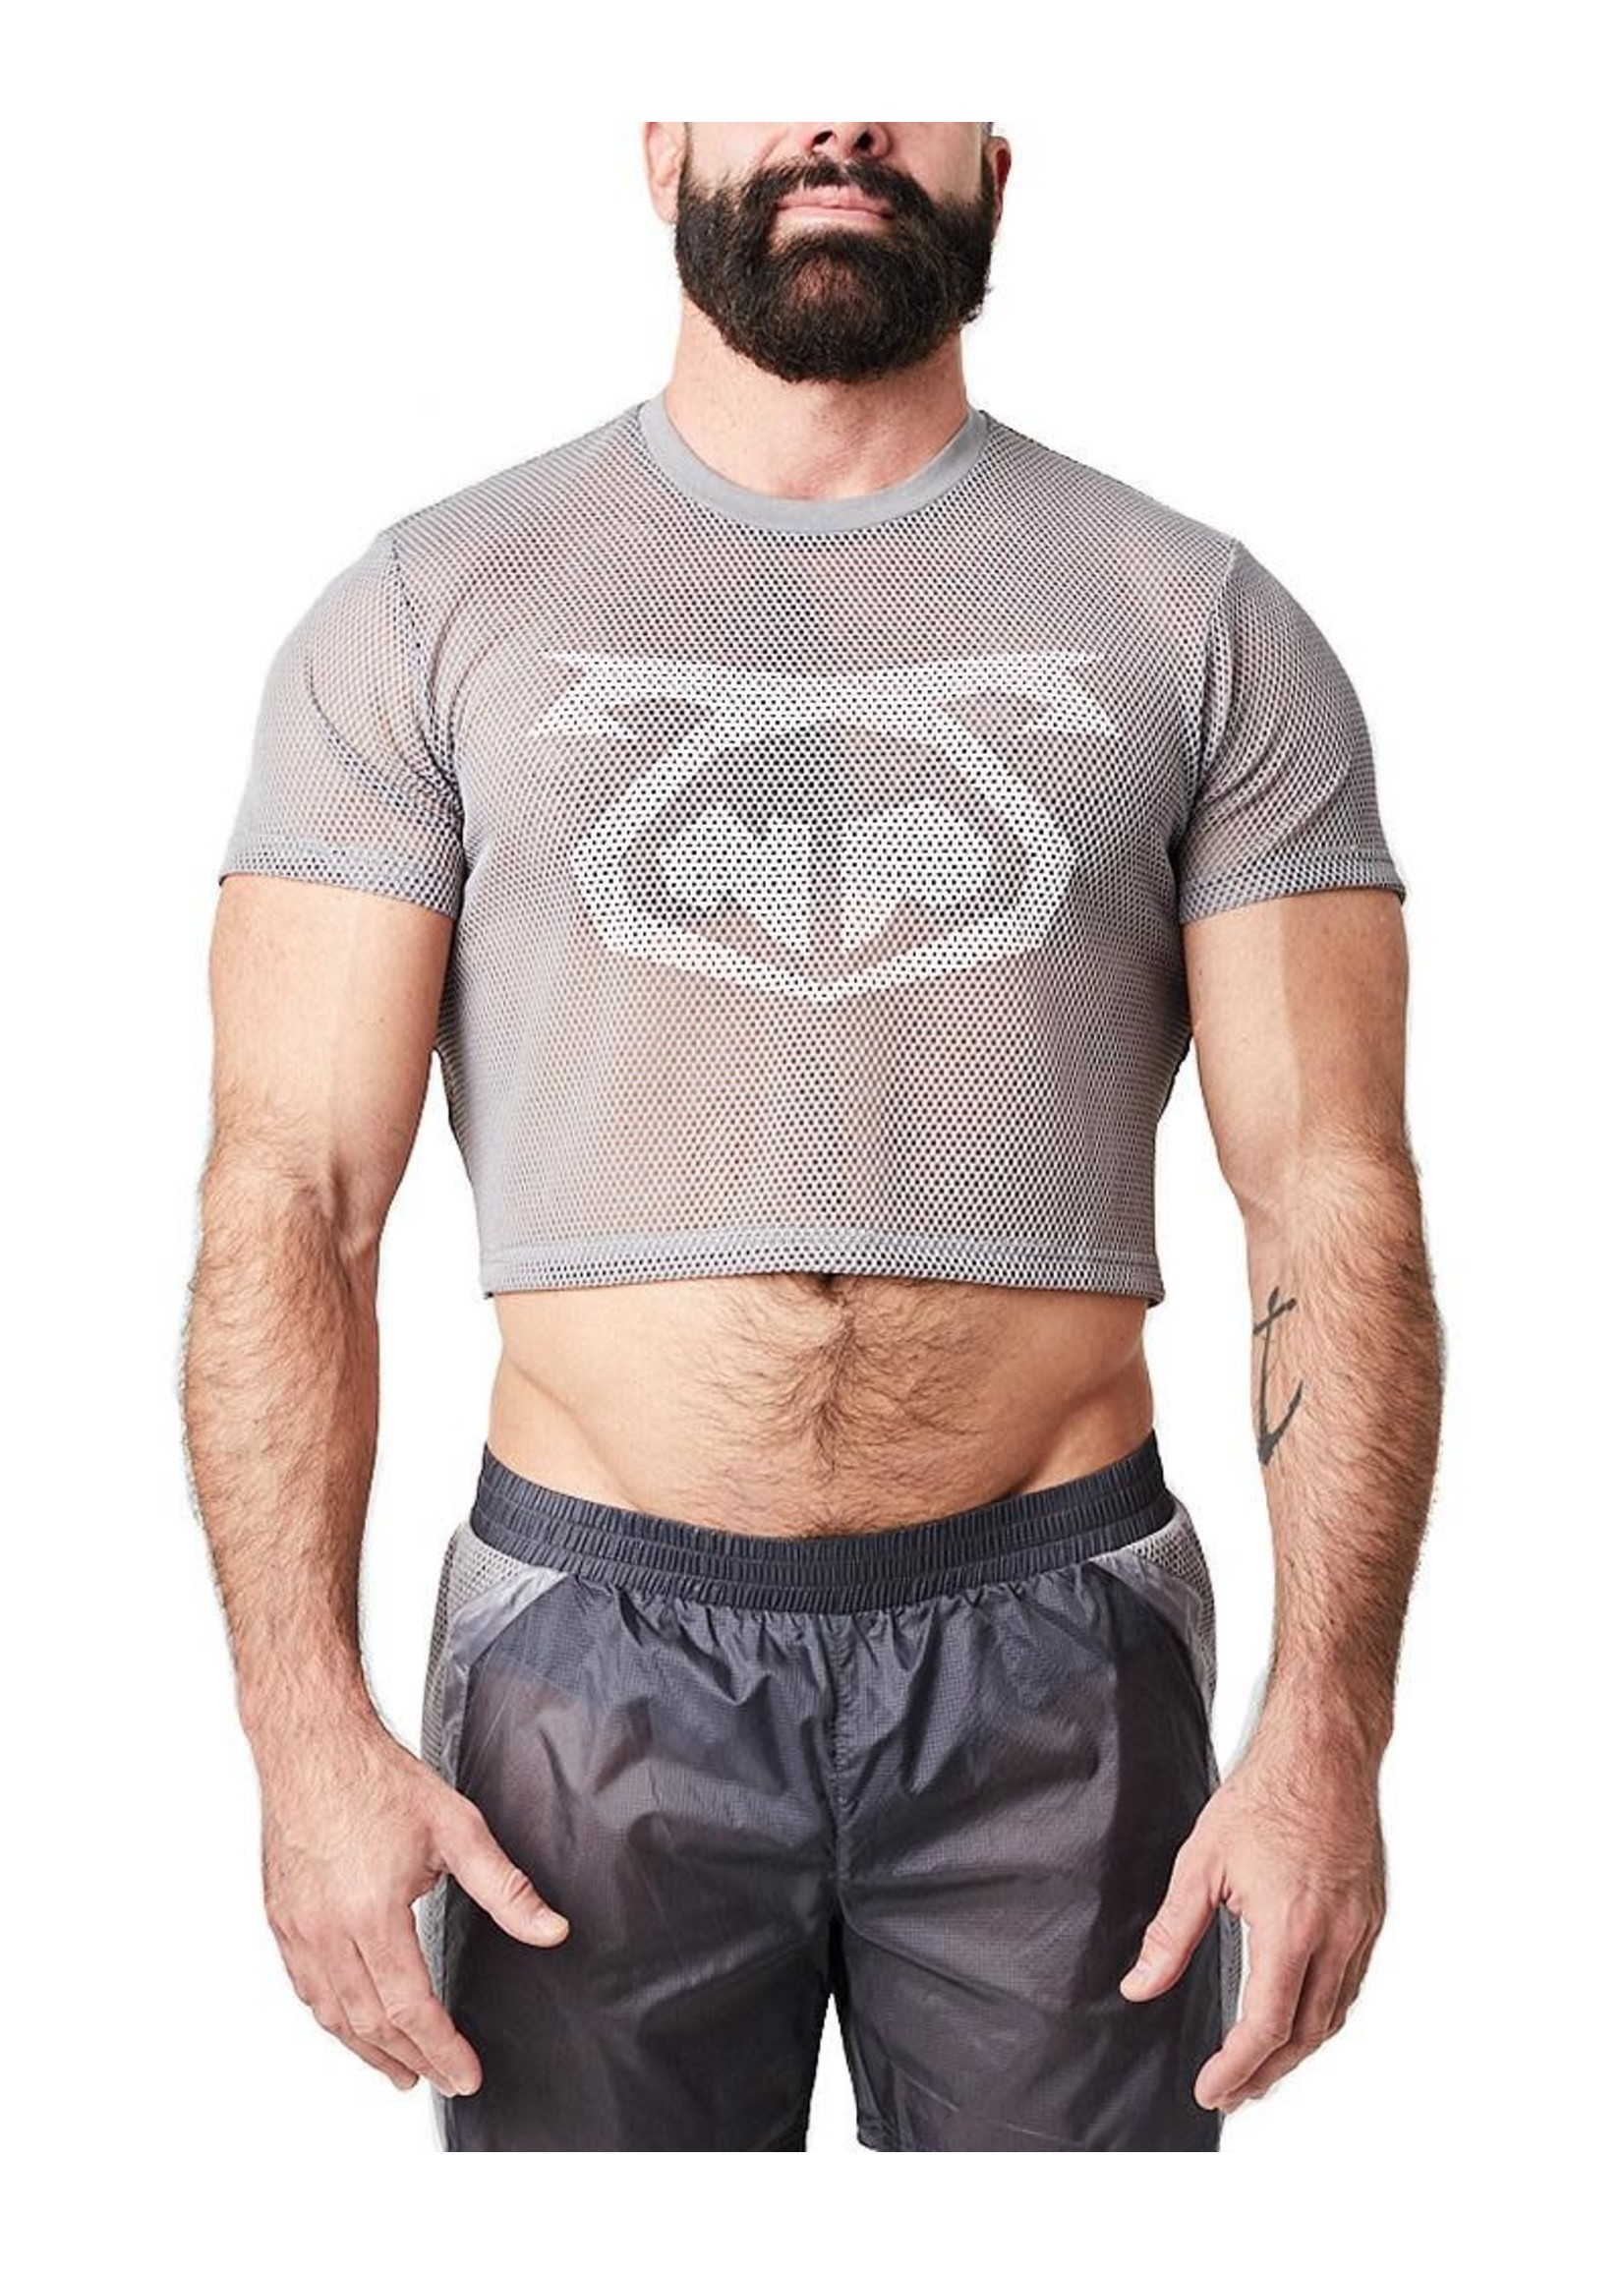 Nasty Pig Nasty Pig High Visibility Crop